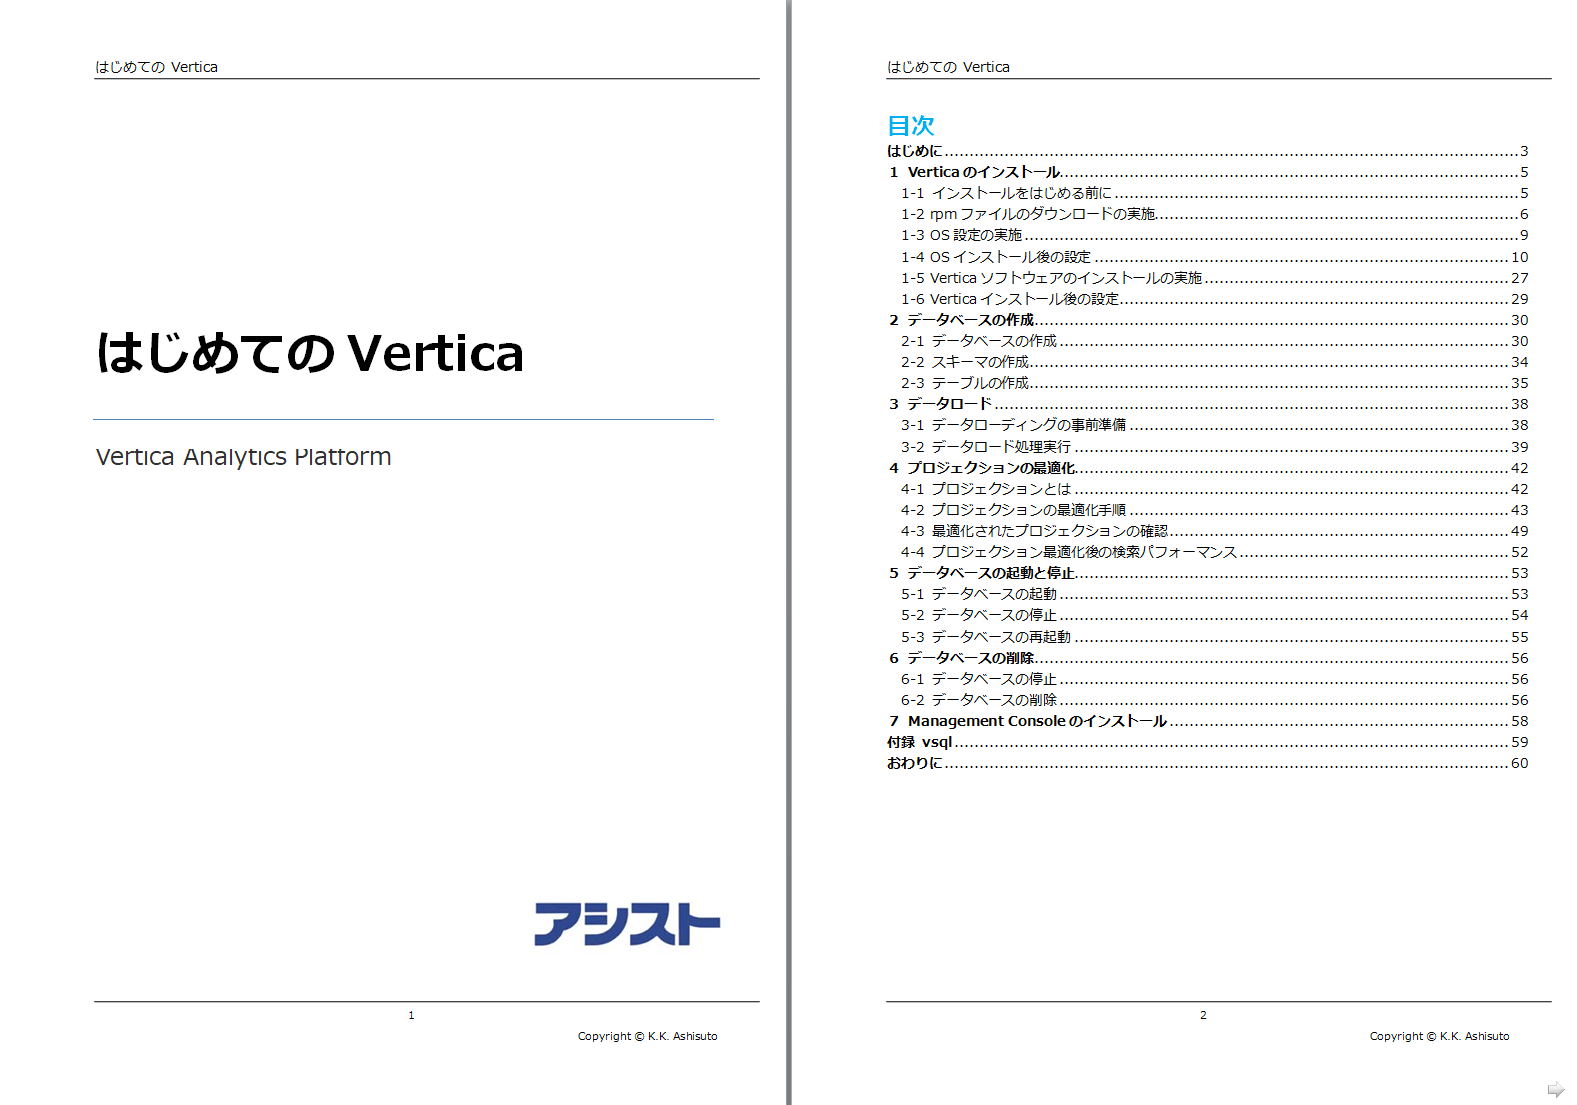 010_First-Step-Vertica